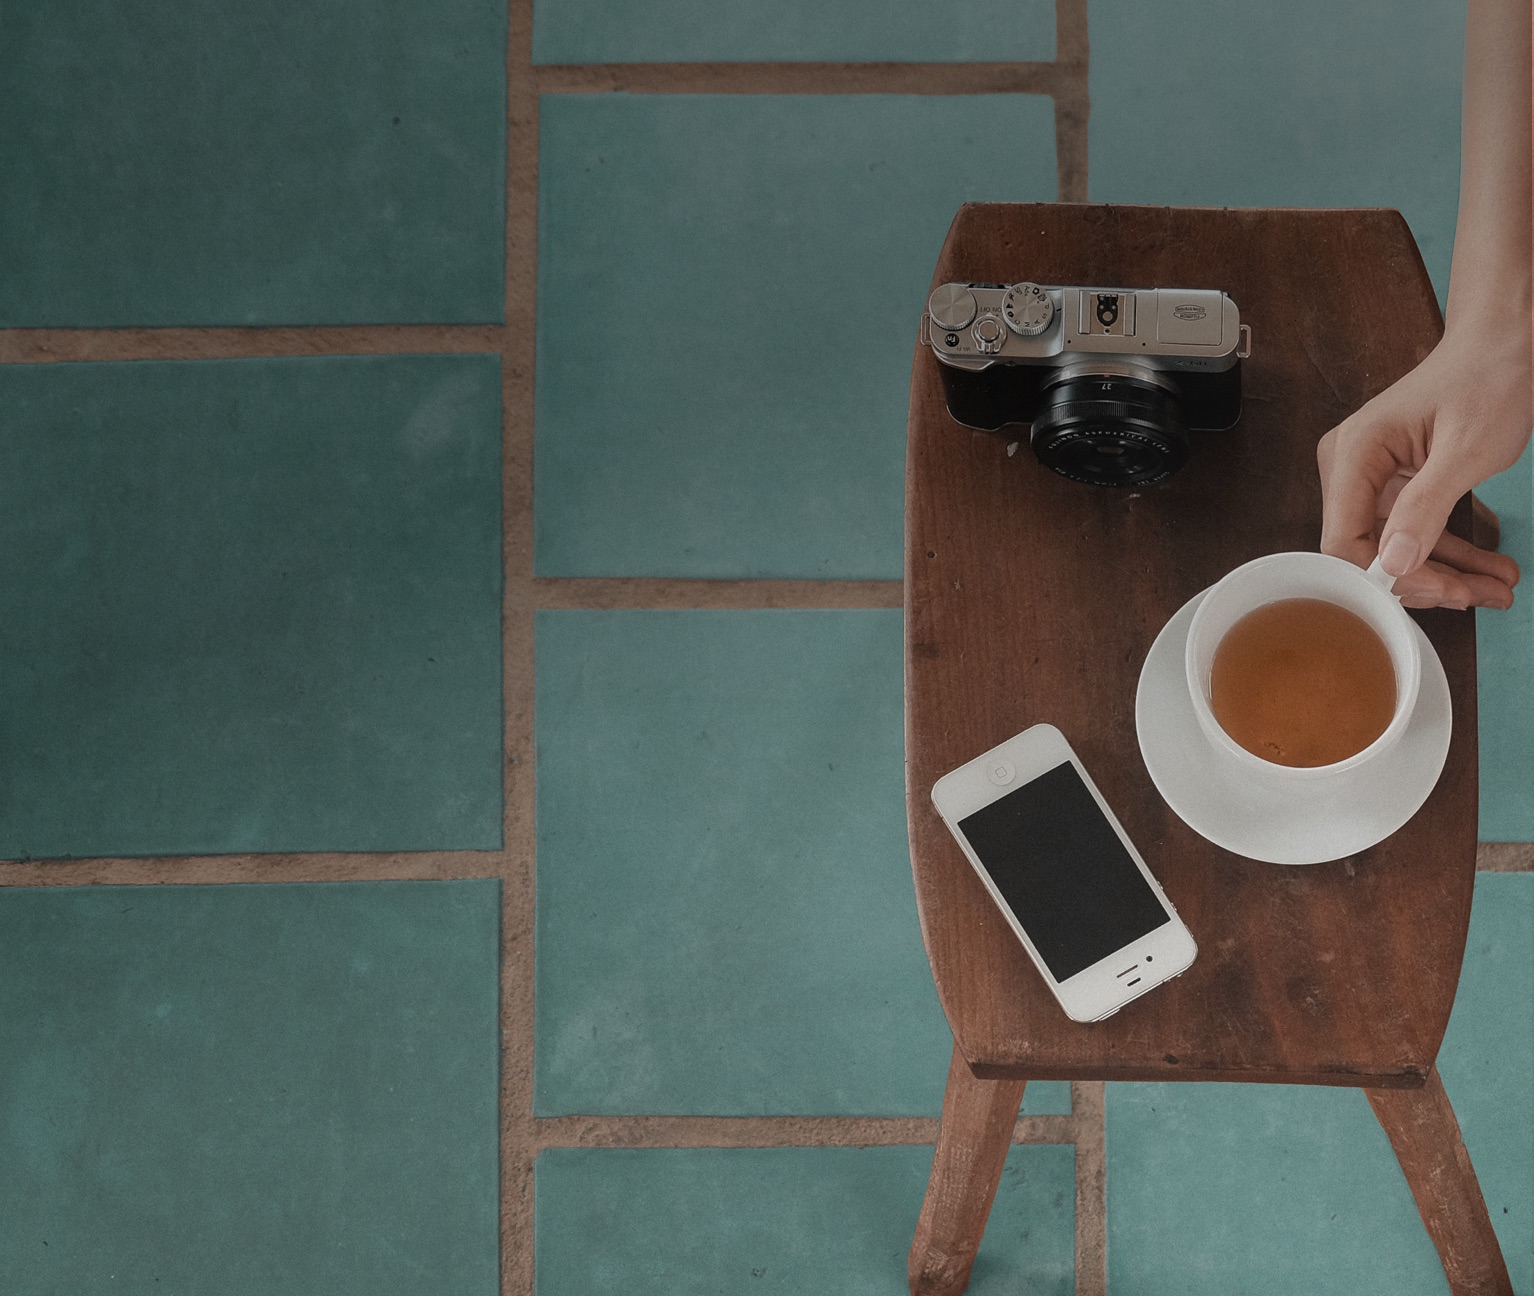 A shot from above of a white iPhone, tea cup and black camera on a wooden table and turquoise tiling.